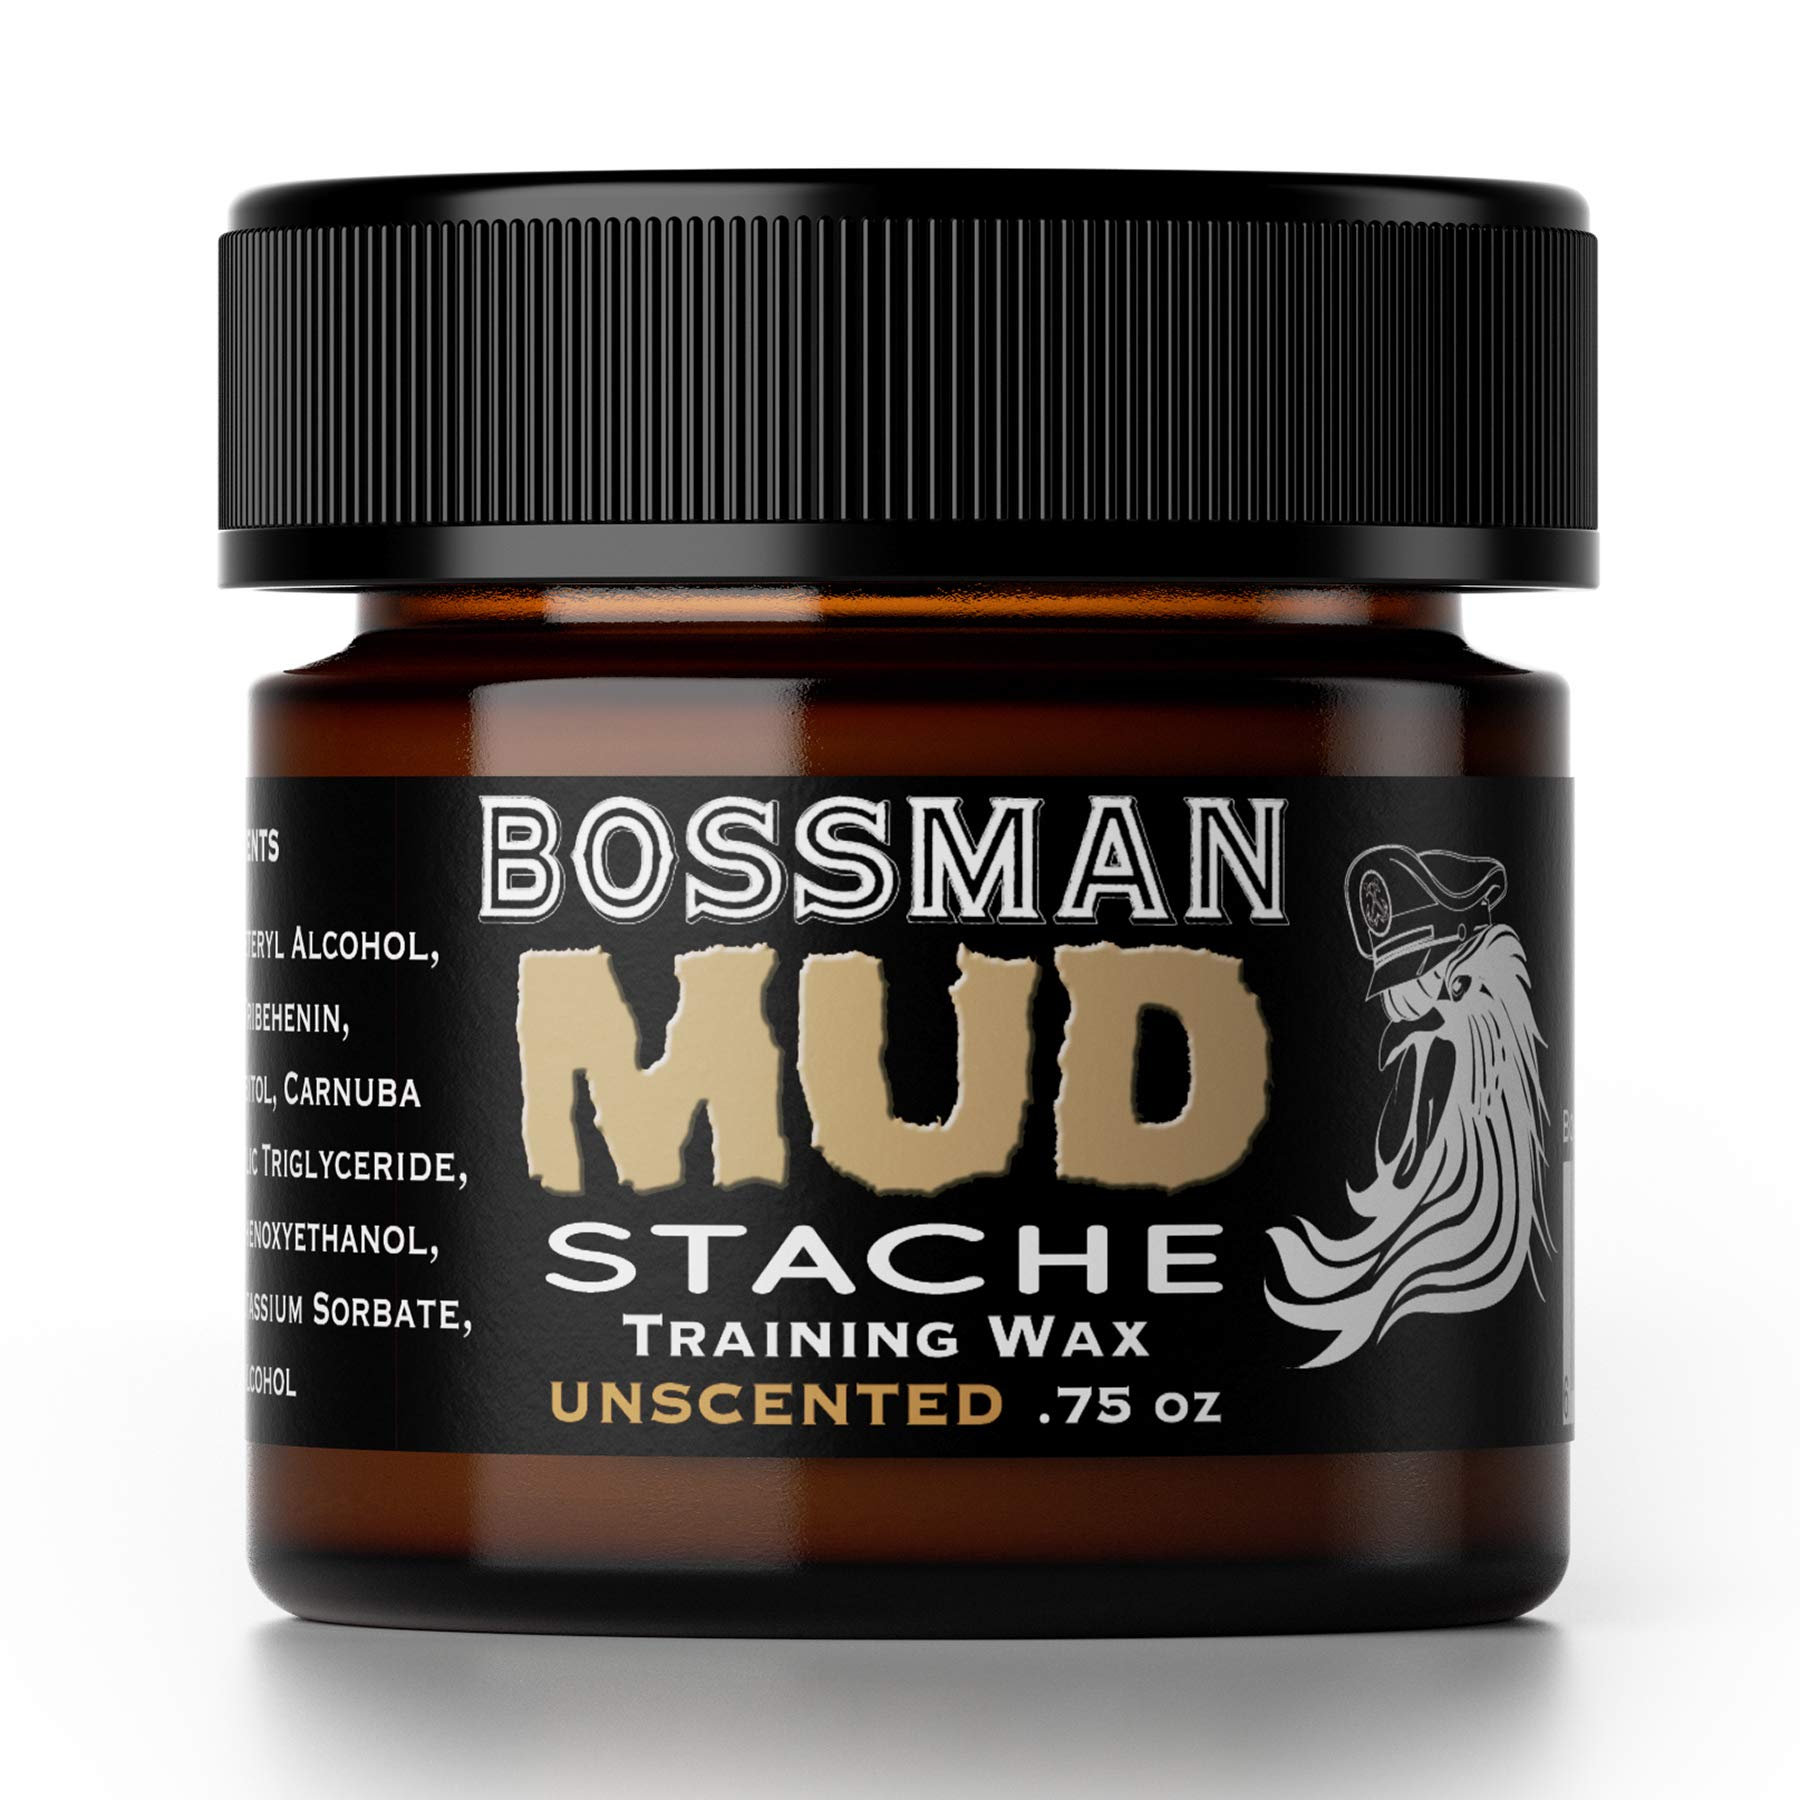 Bossman MUDstache - Mustache Training Wax, Lasts 24hrs, Unscented, No Tint. Tame, Train and Style by Bossman (Image #1)